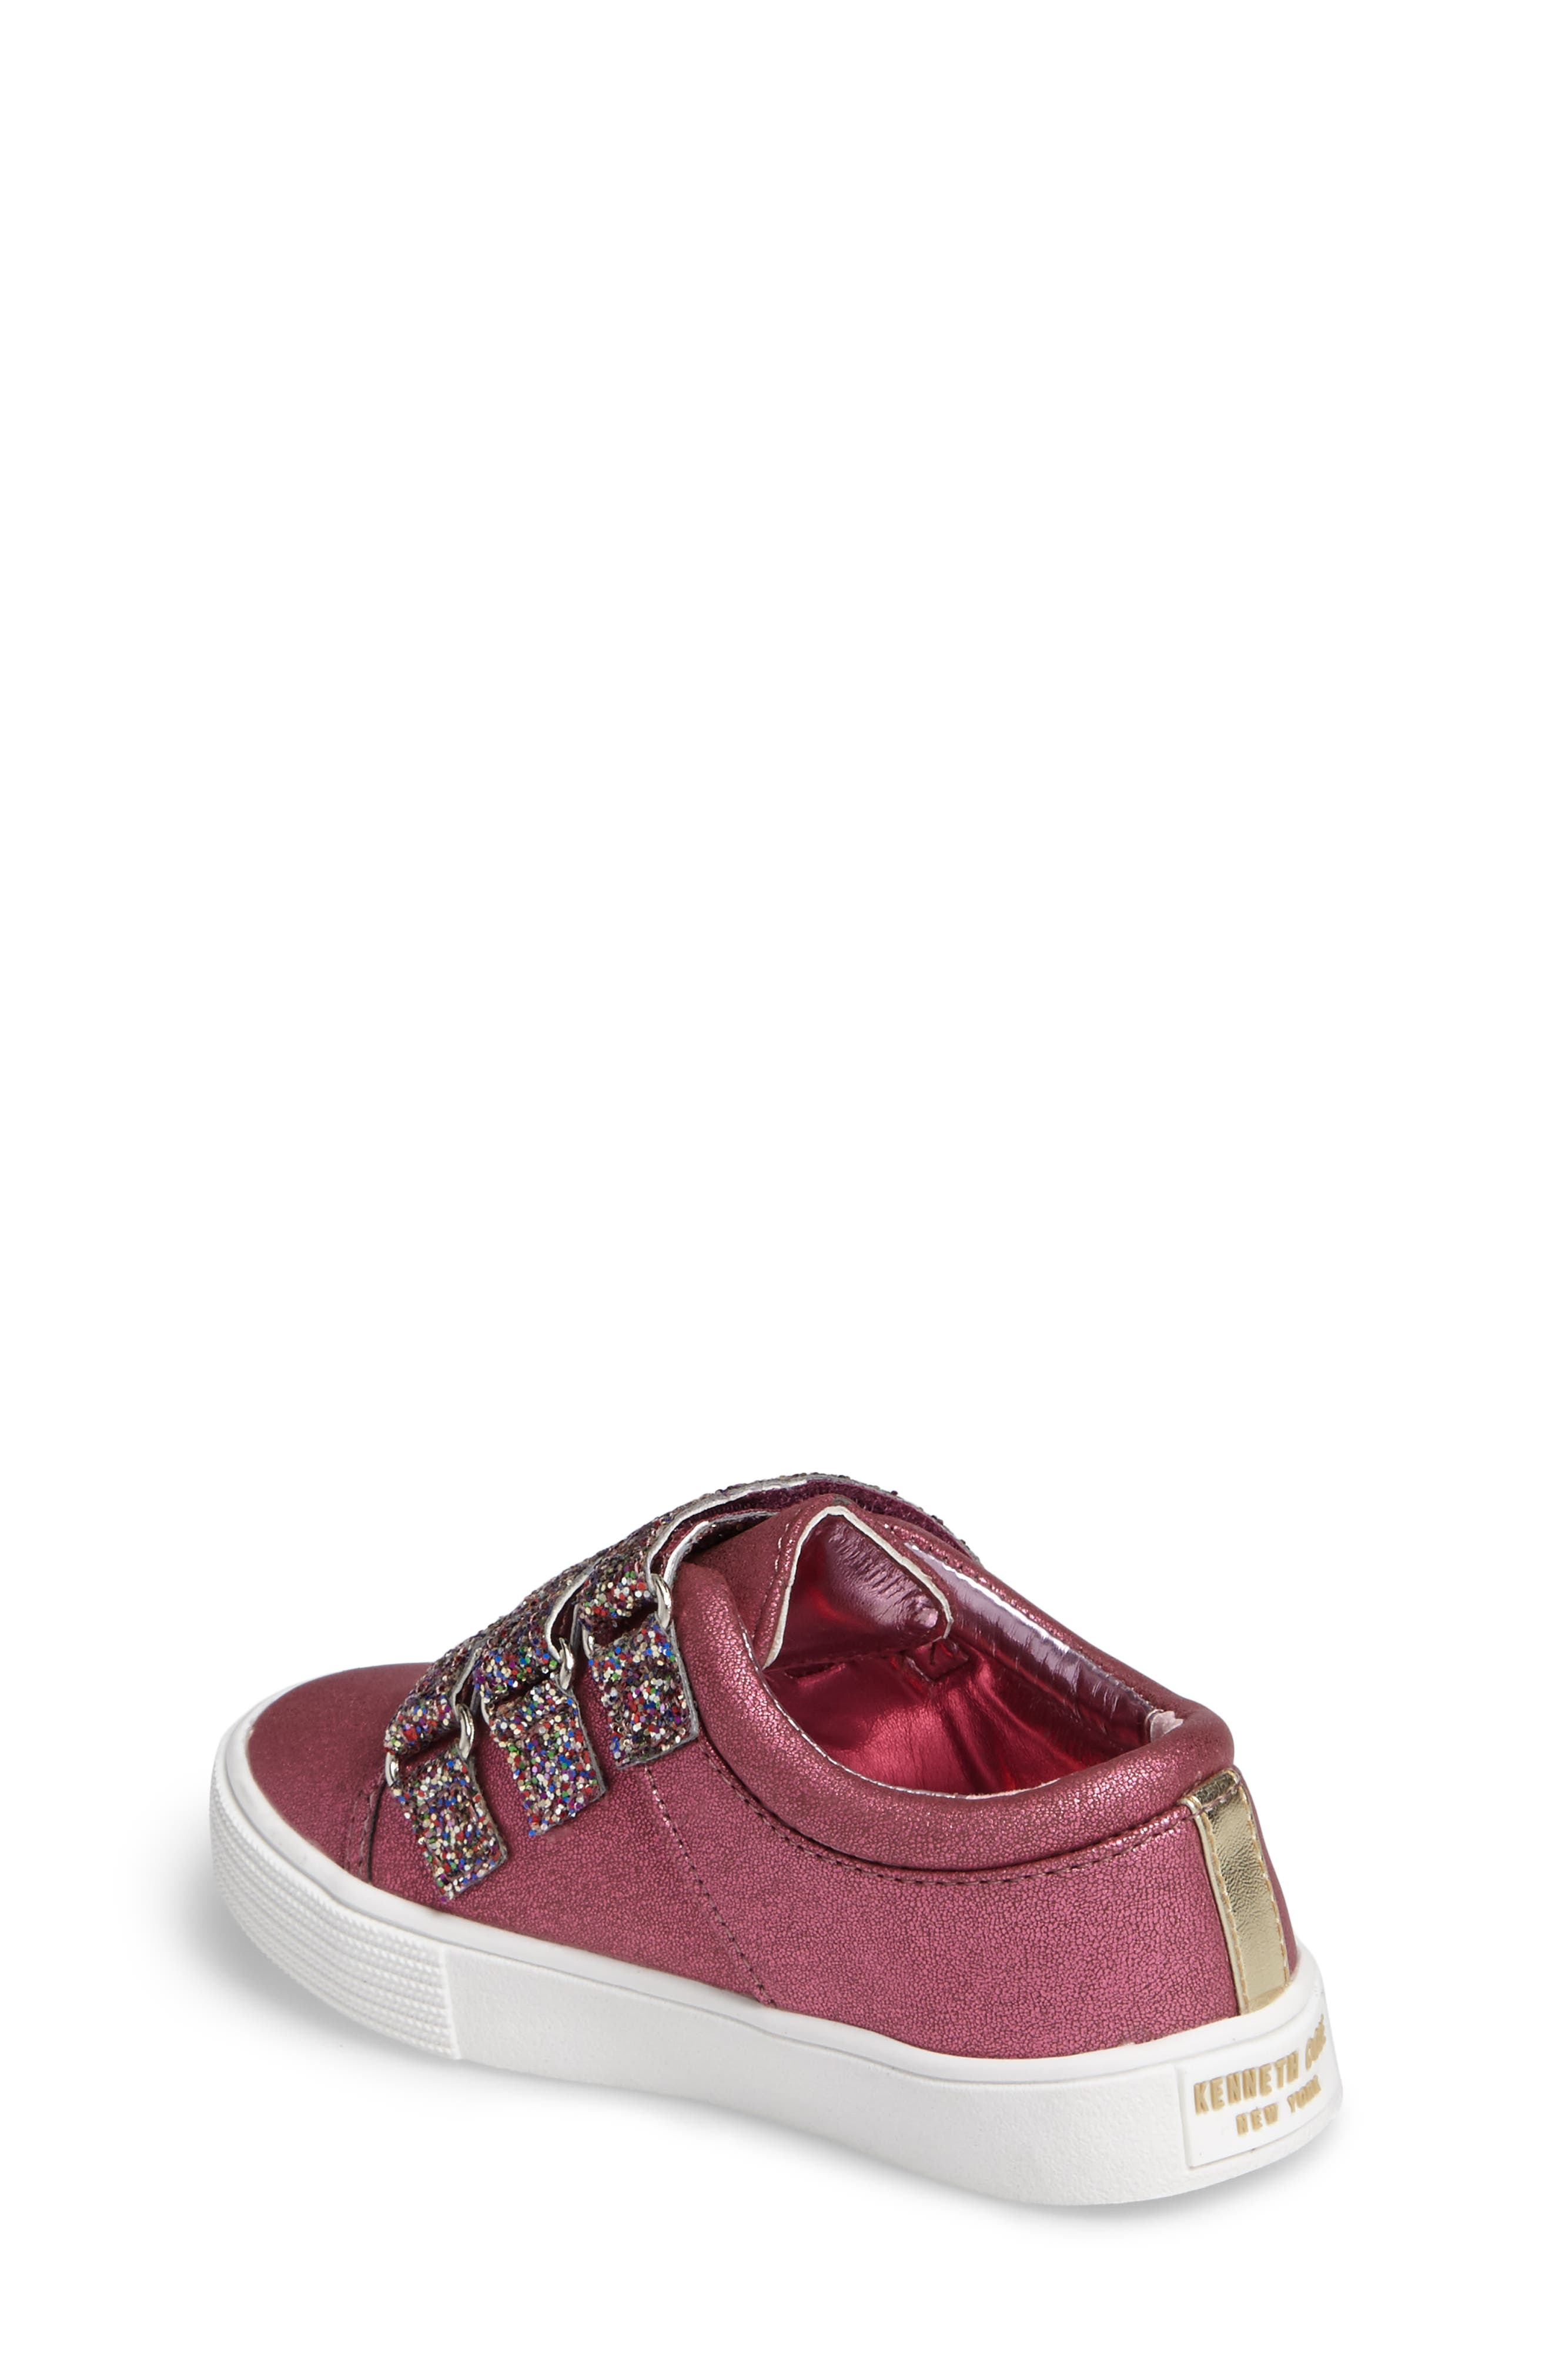 Kam Glitter Strap Sneaker,                             Alternate thumbnail 2, color,                             697